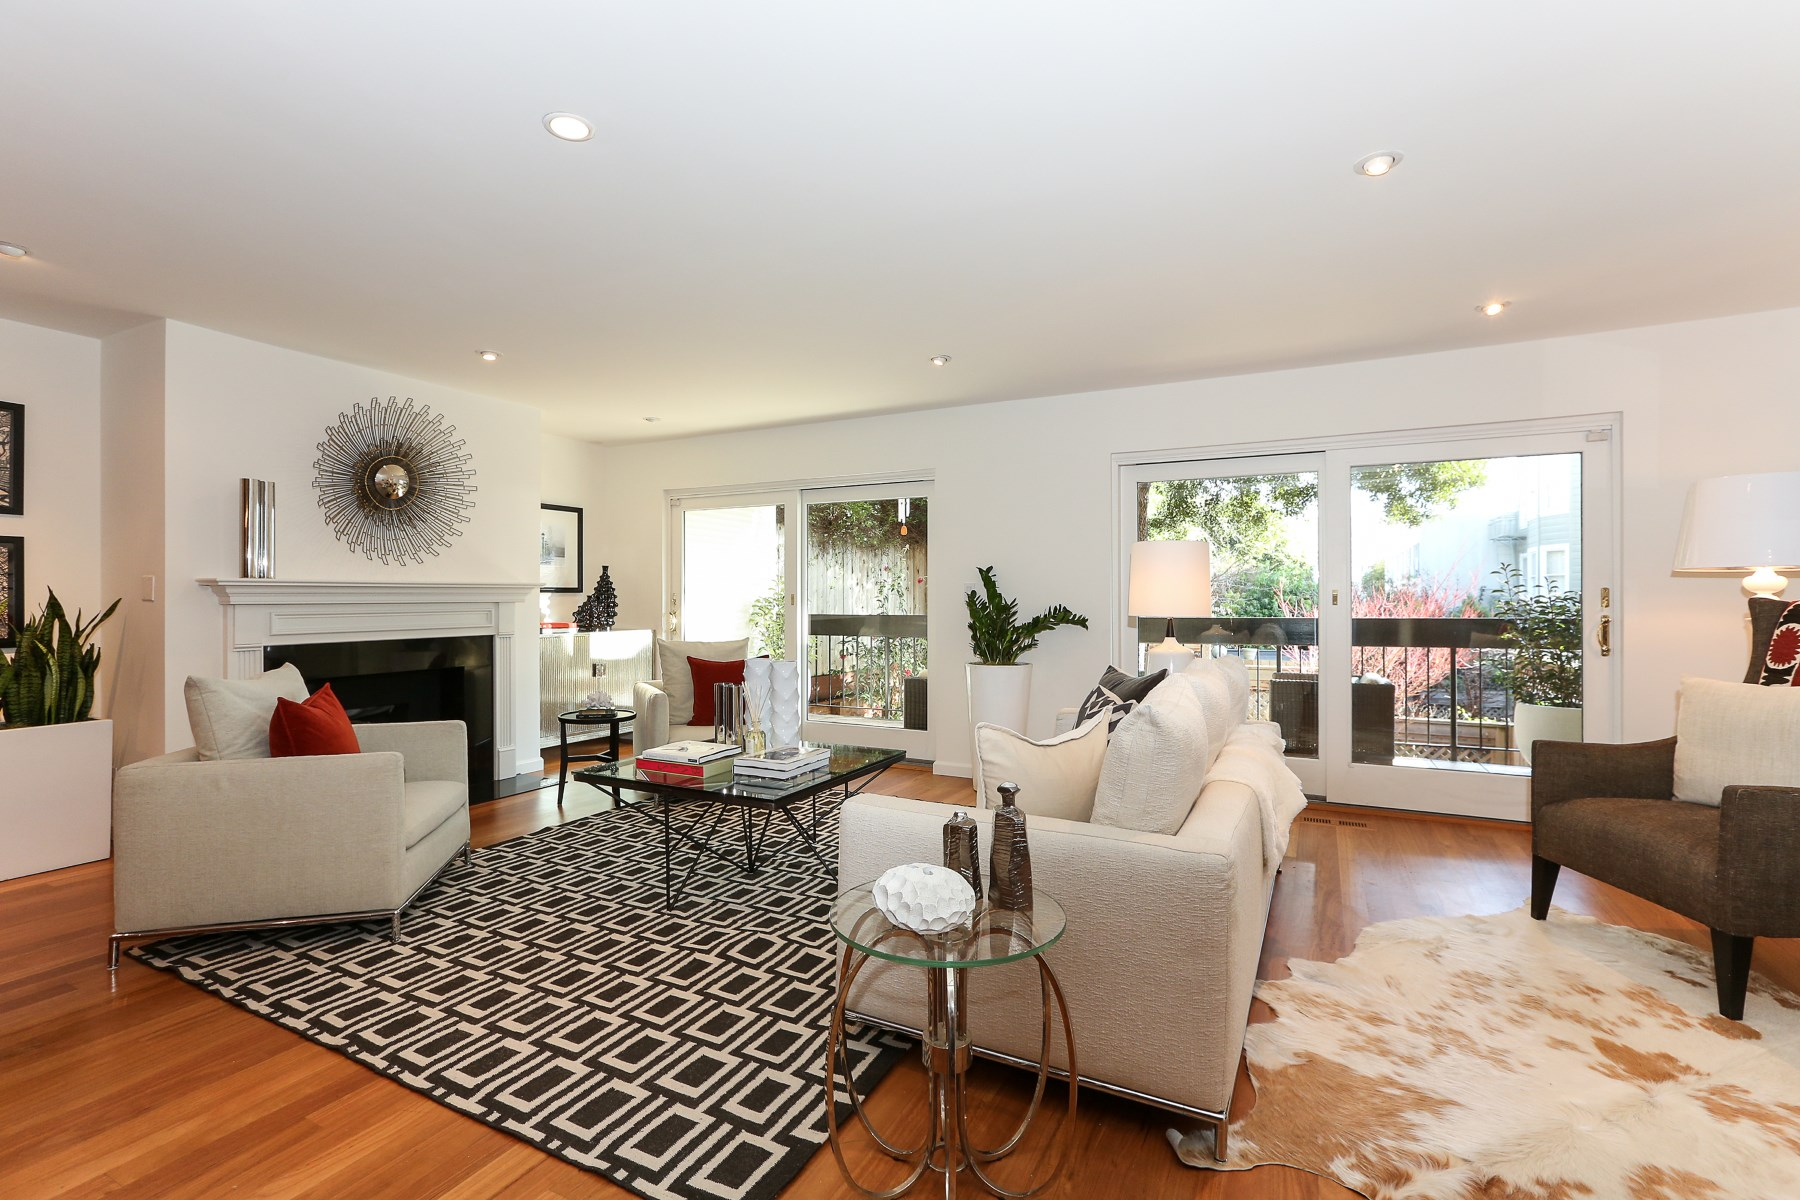 Property For Sale at Two-Bedroom Condo Near Alta Plaza